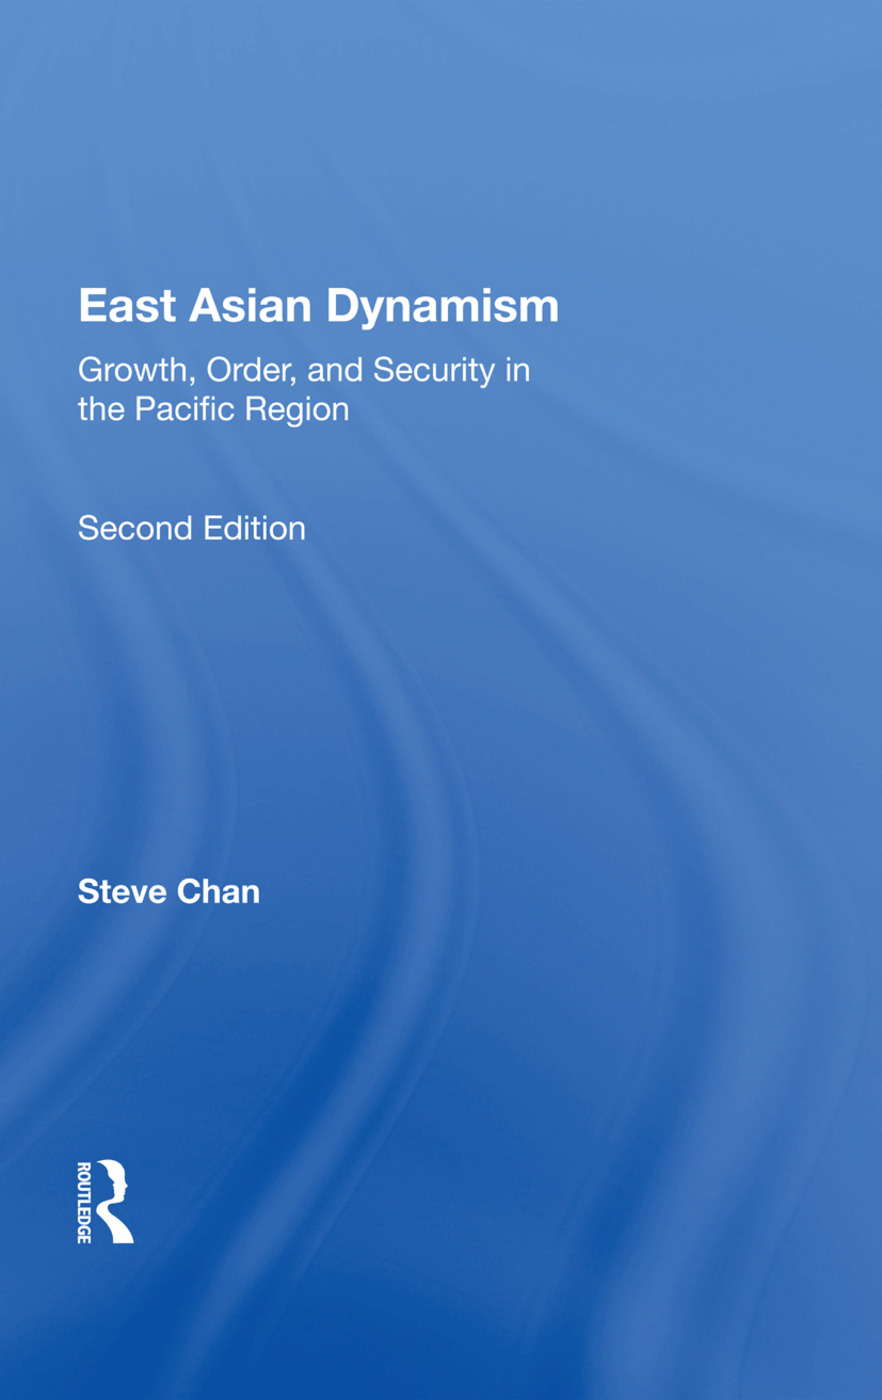 East Asian Dynamism